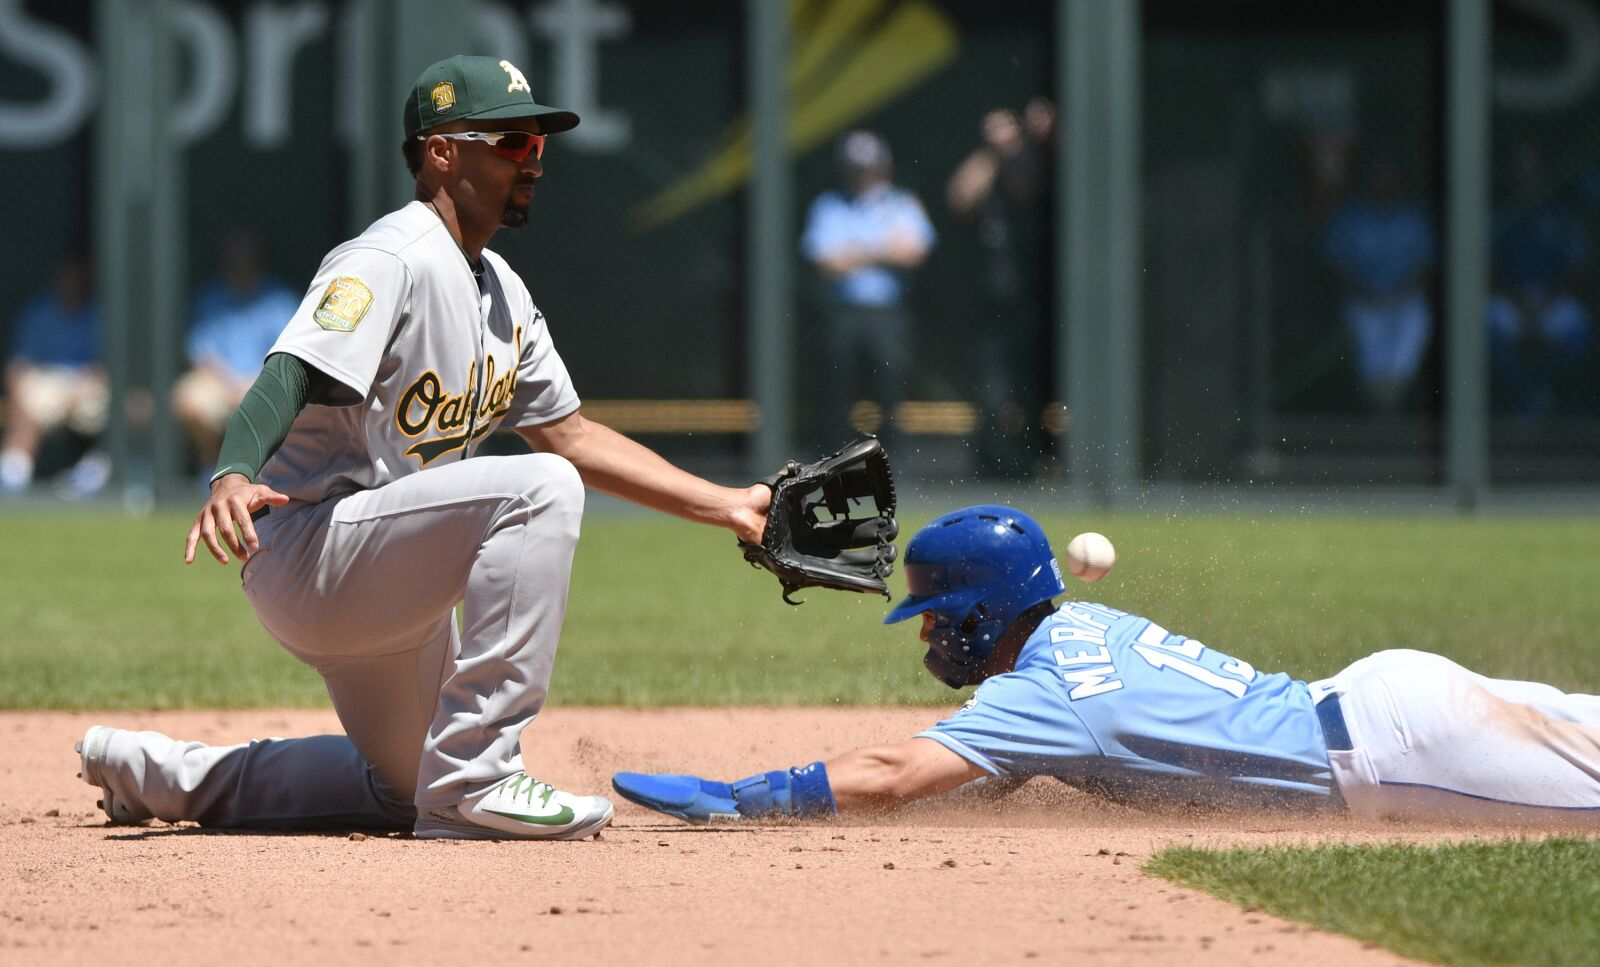 The KC Royals should note how the A's became the best team in the West